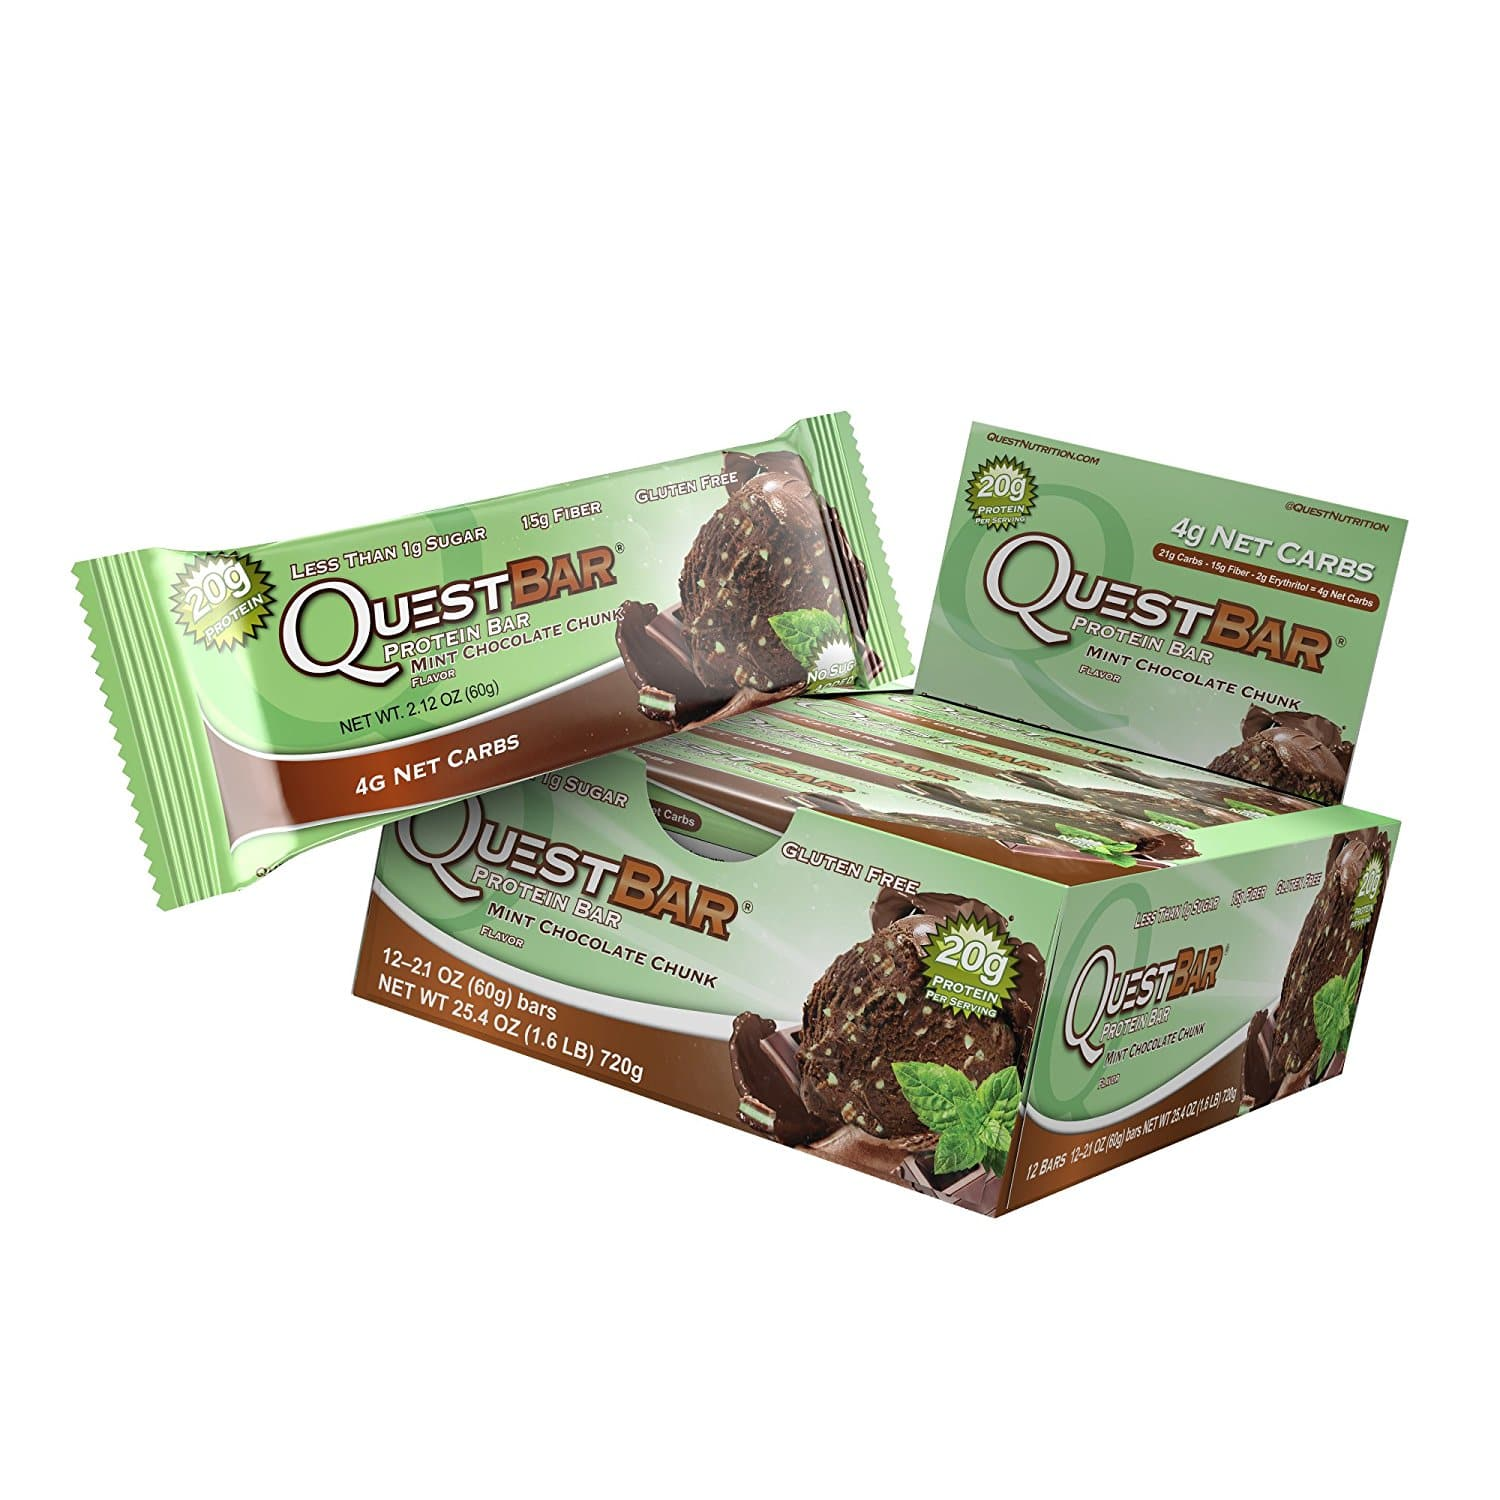 675930e23c80 12-Ct of 2.1oz Quest Nutrition Protein Bar (Mint Chocolate Chunk ...